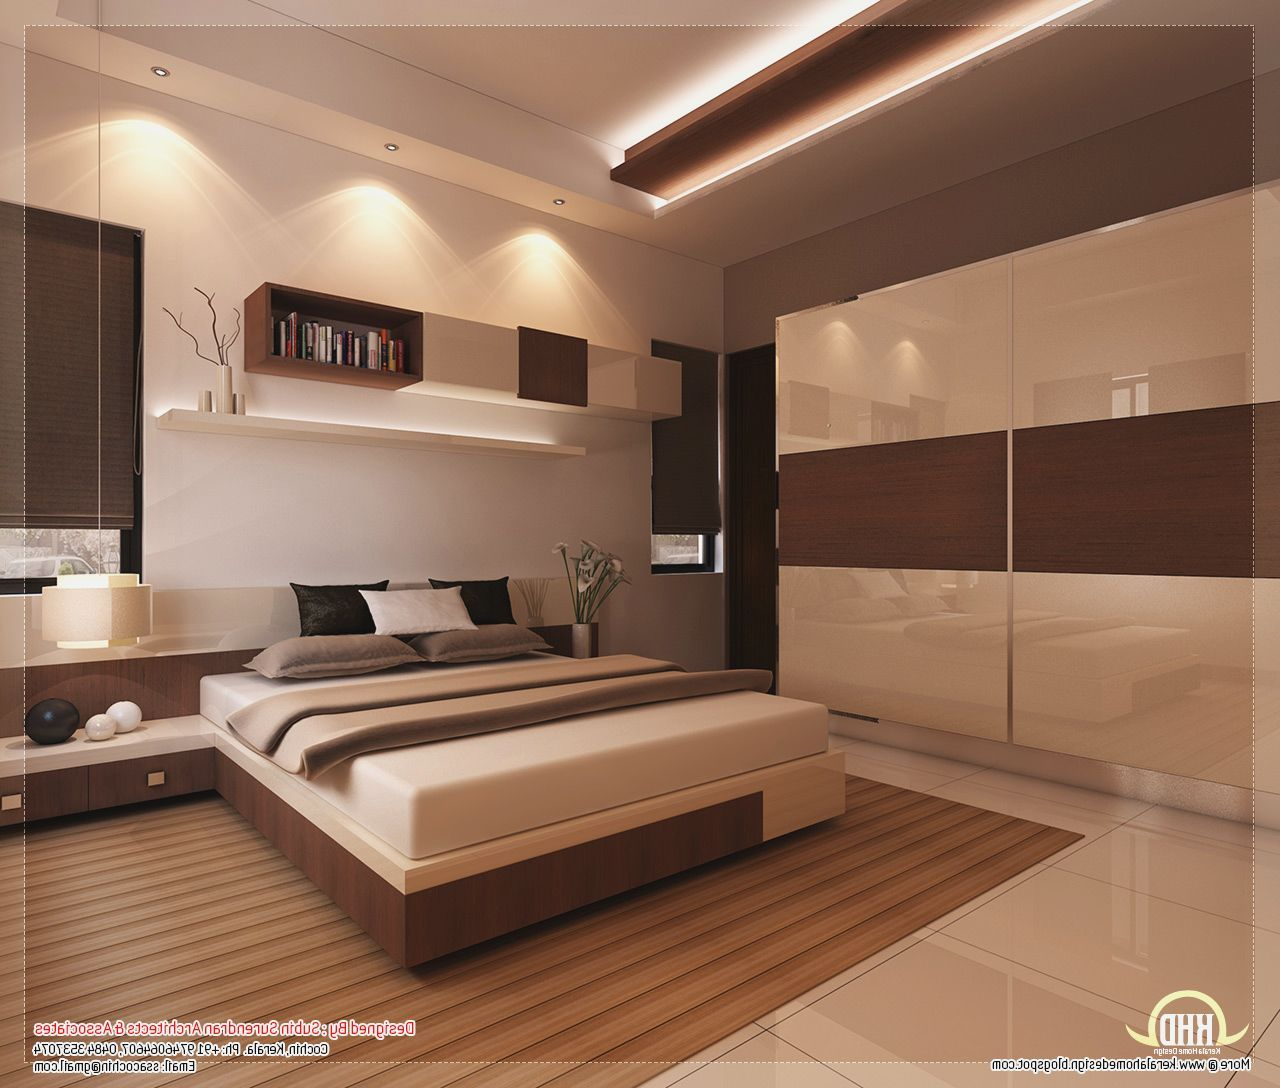 Bedroom Designs India Low Cost Gr7ee Interior Design Bedroom Bedroom Furniture Design Luxury Bedroom Design